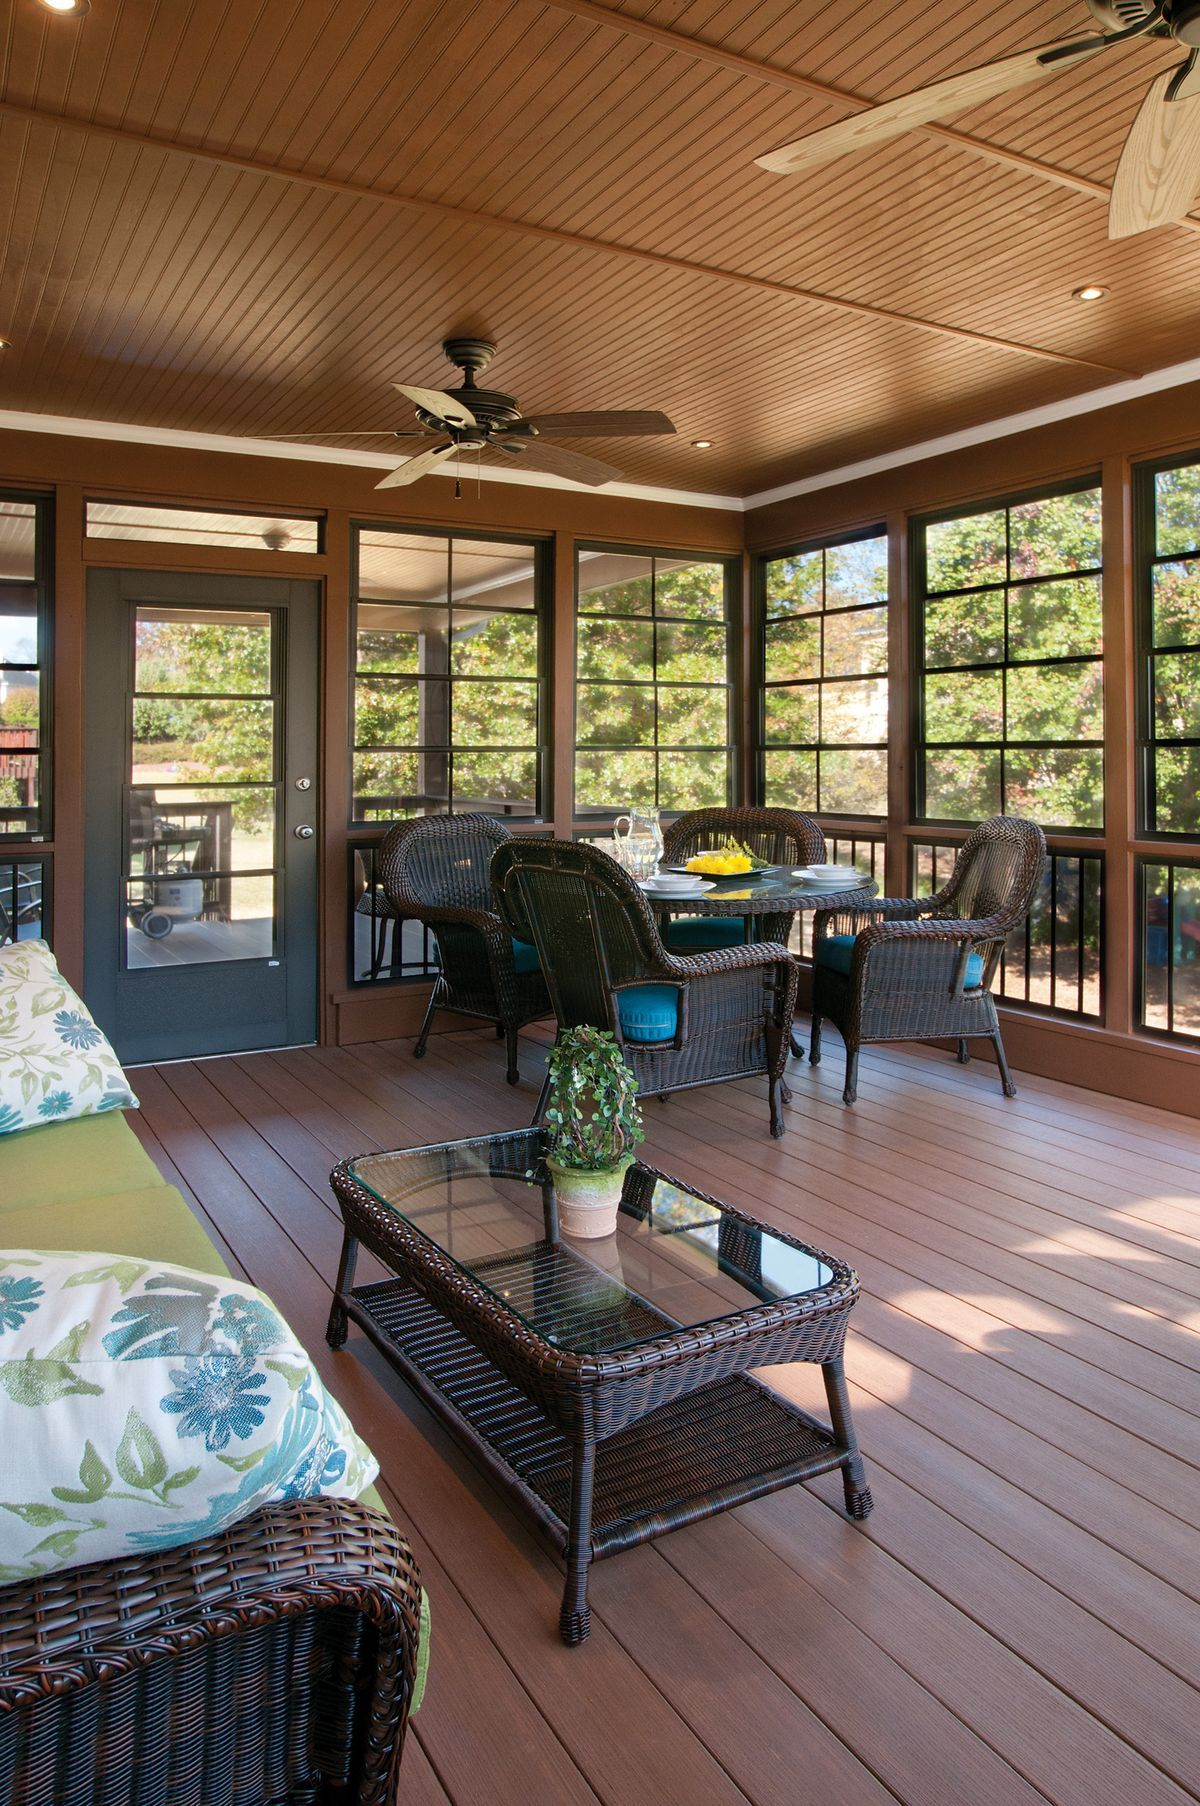 Pin By Jane Morgan On Sunroom In 2019 Sunroom Decorating